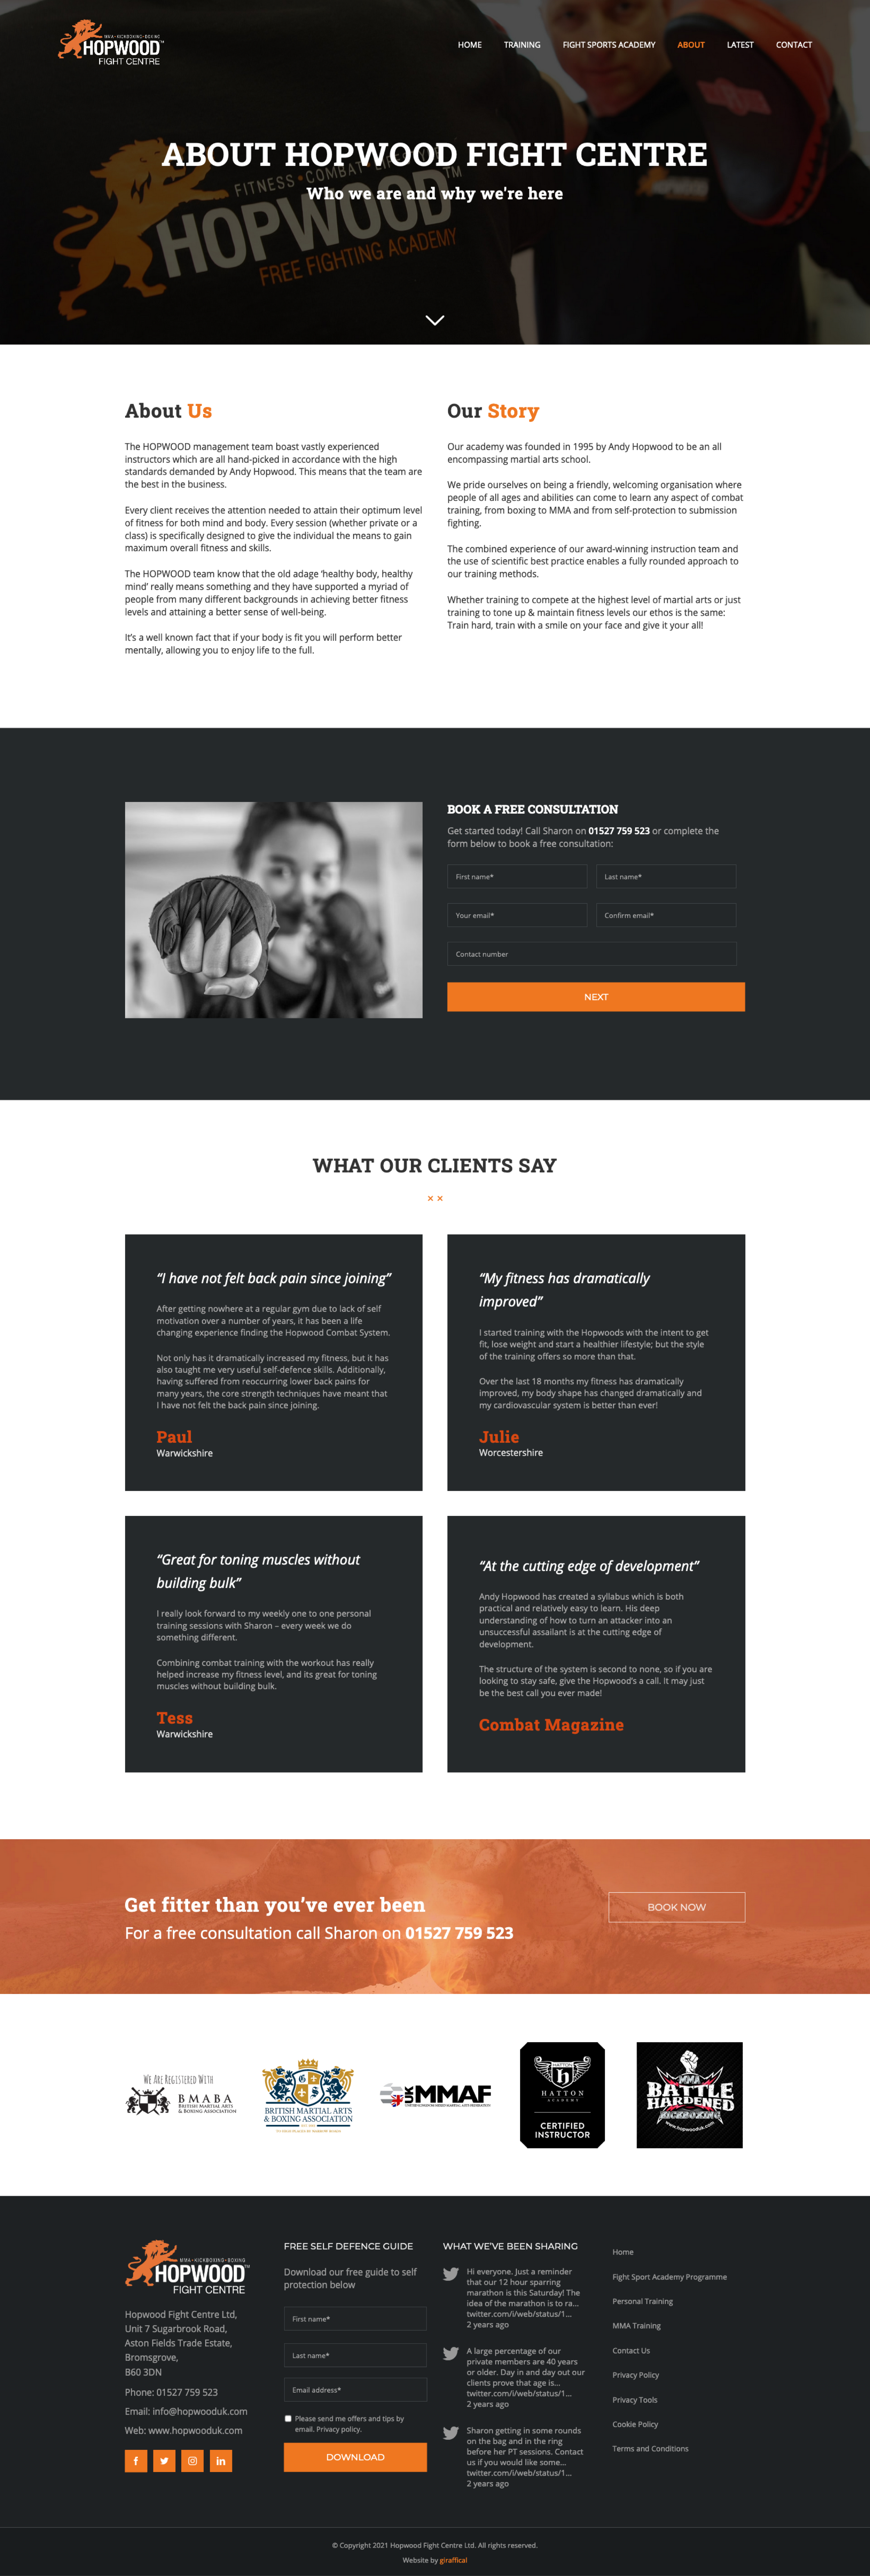 Fight Centre Gym Website Design - Hopwood Fight Centre - About Page